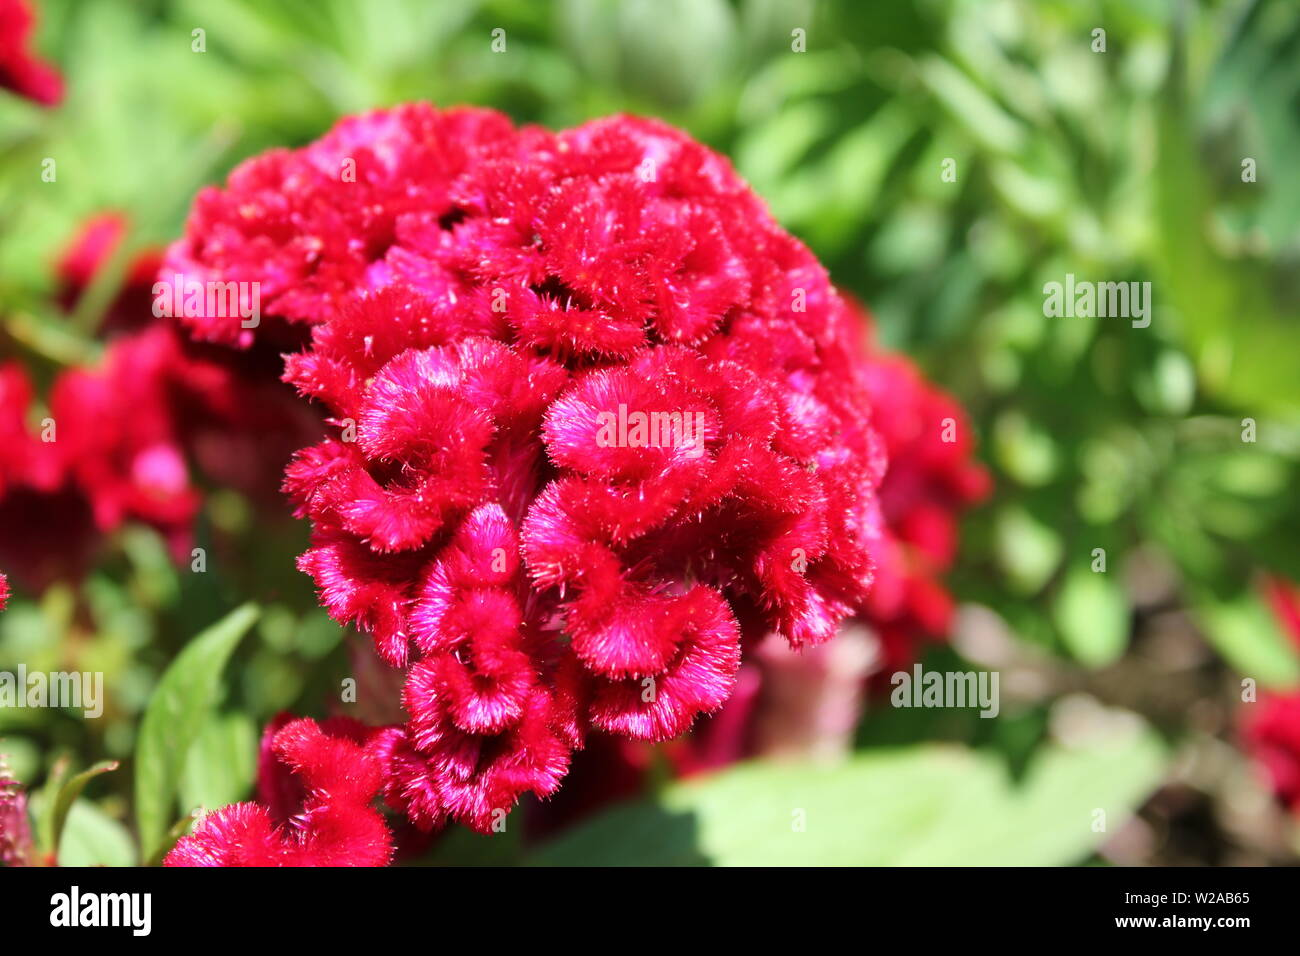 Beautiful red fuzzy crested cockscomb, Celosia argentea var. cristata, growing in a garden in the bright summer sun. Stock Photo